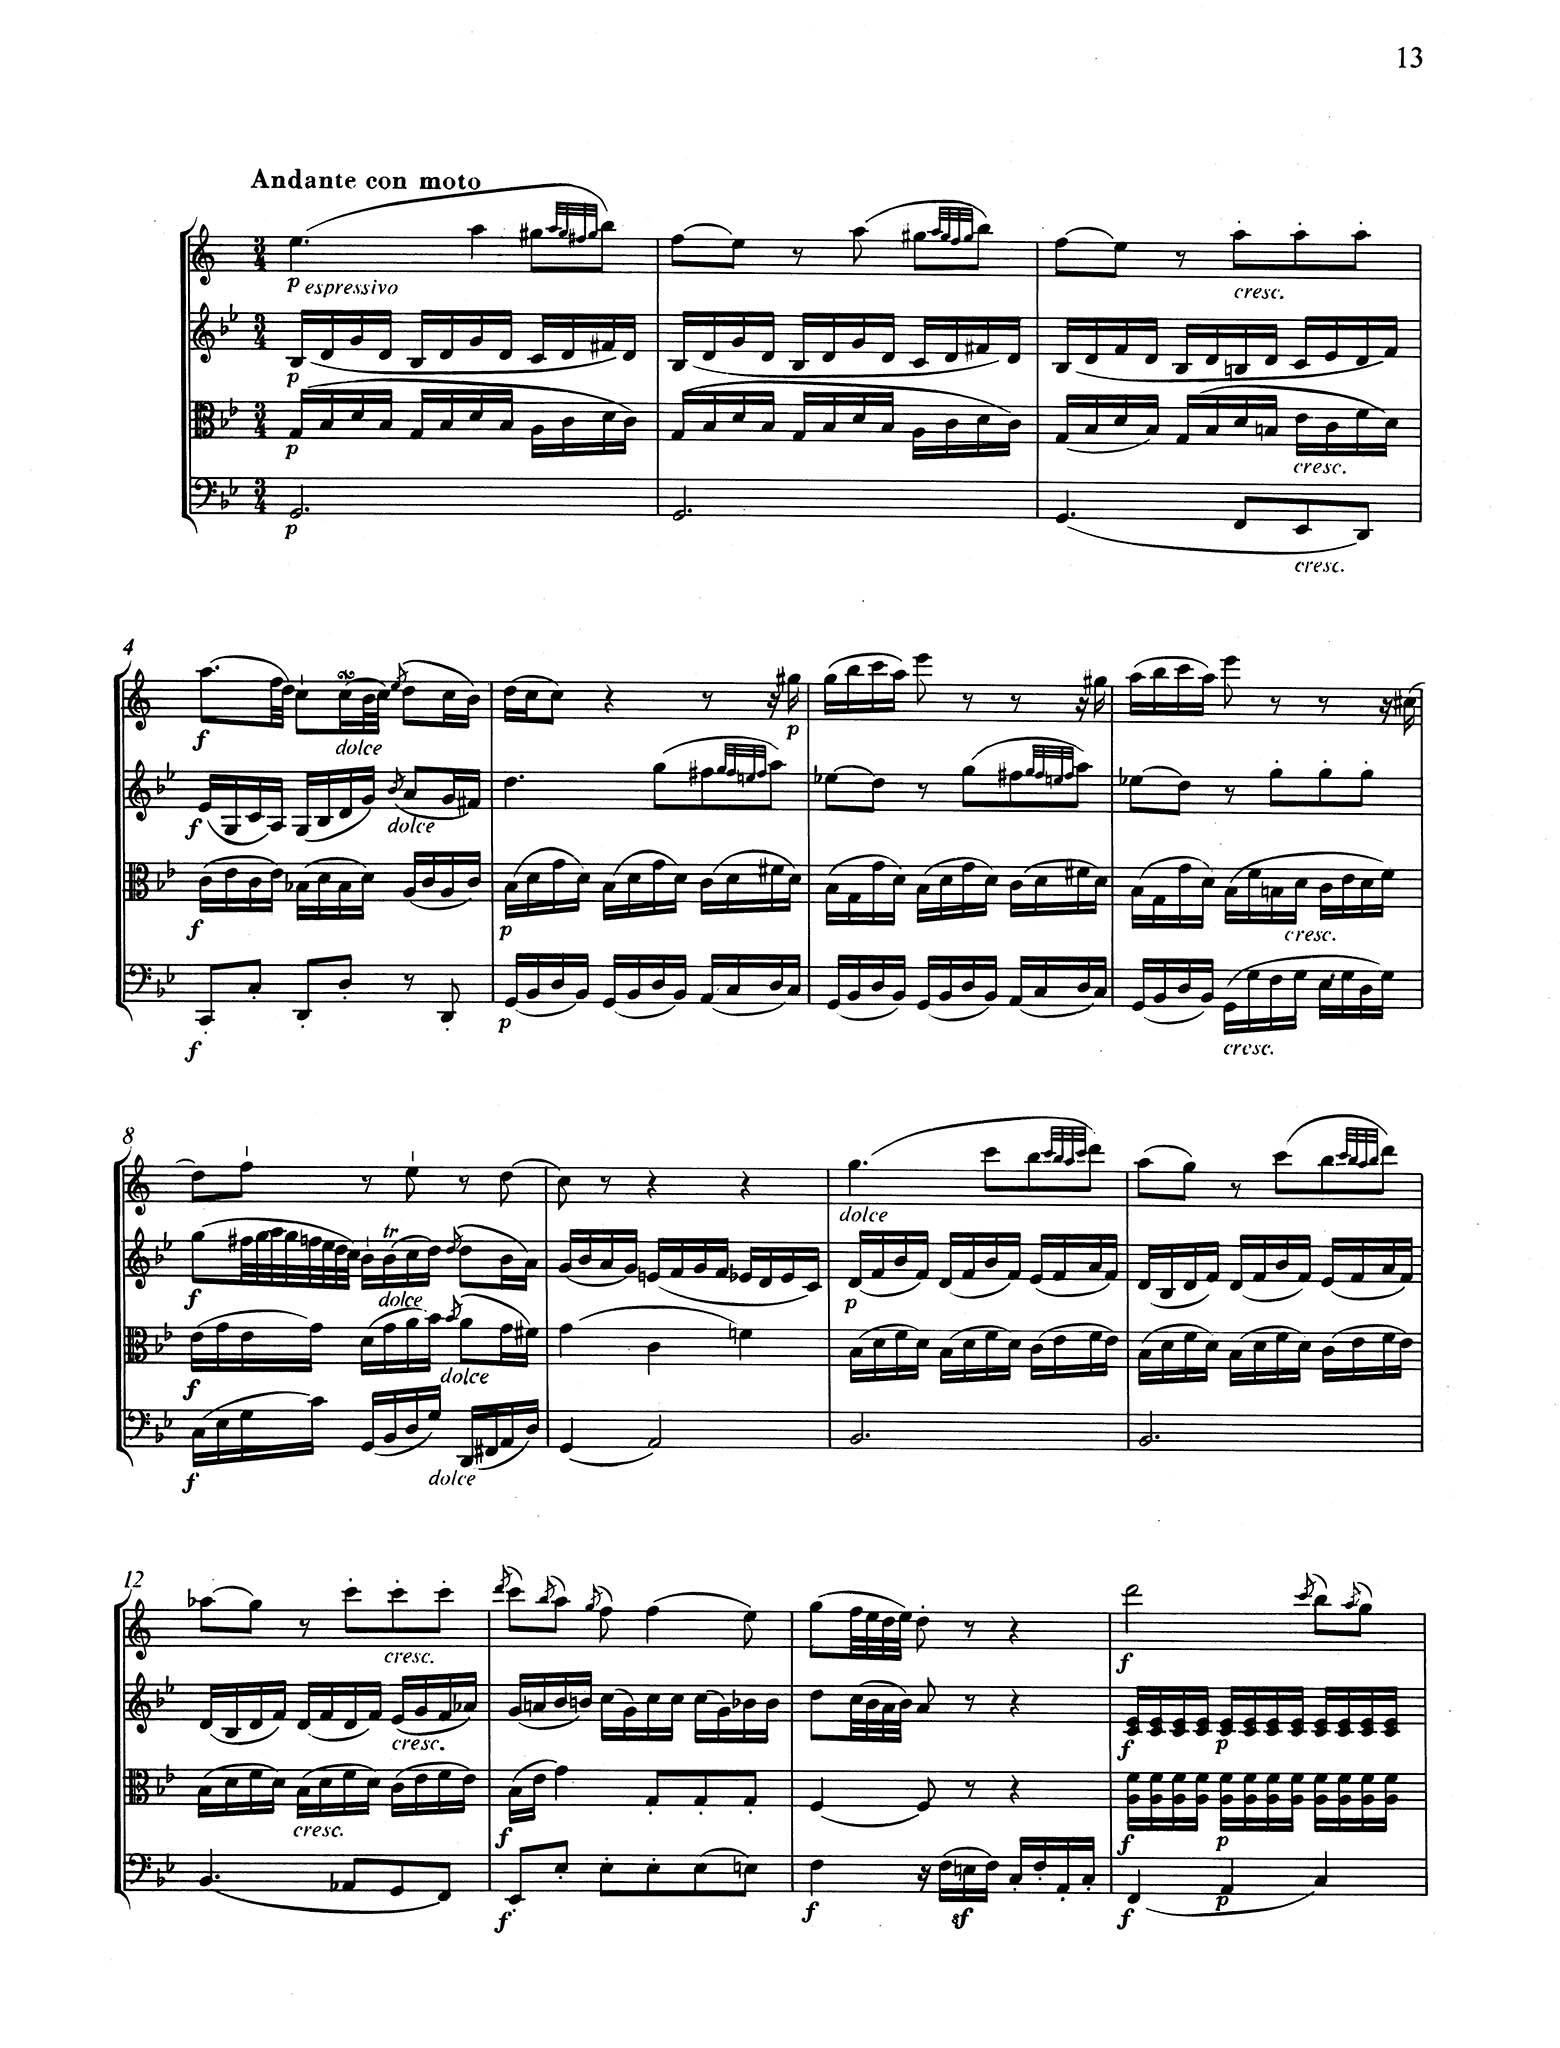 Violin Sonata in E-Flat Major, K. 380/374f - Movement 2